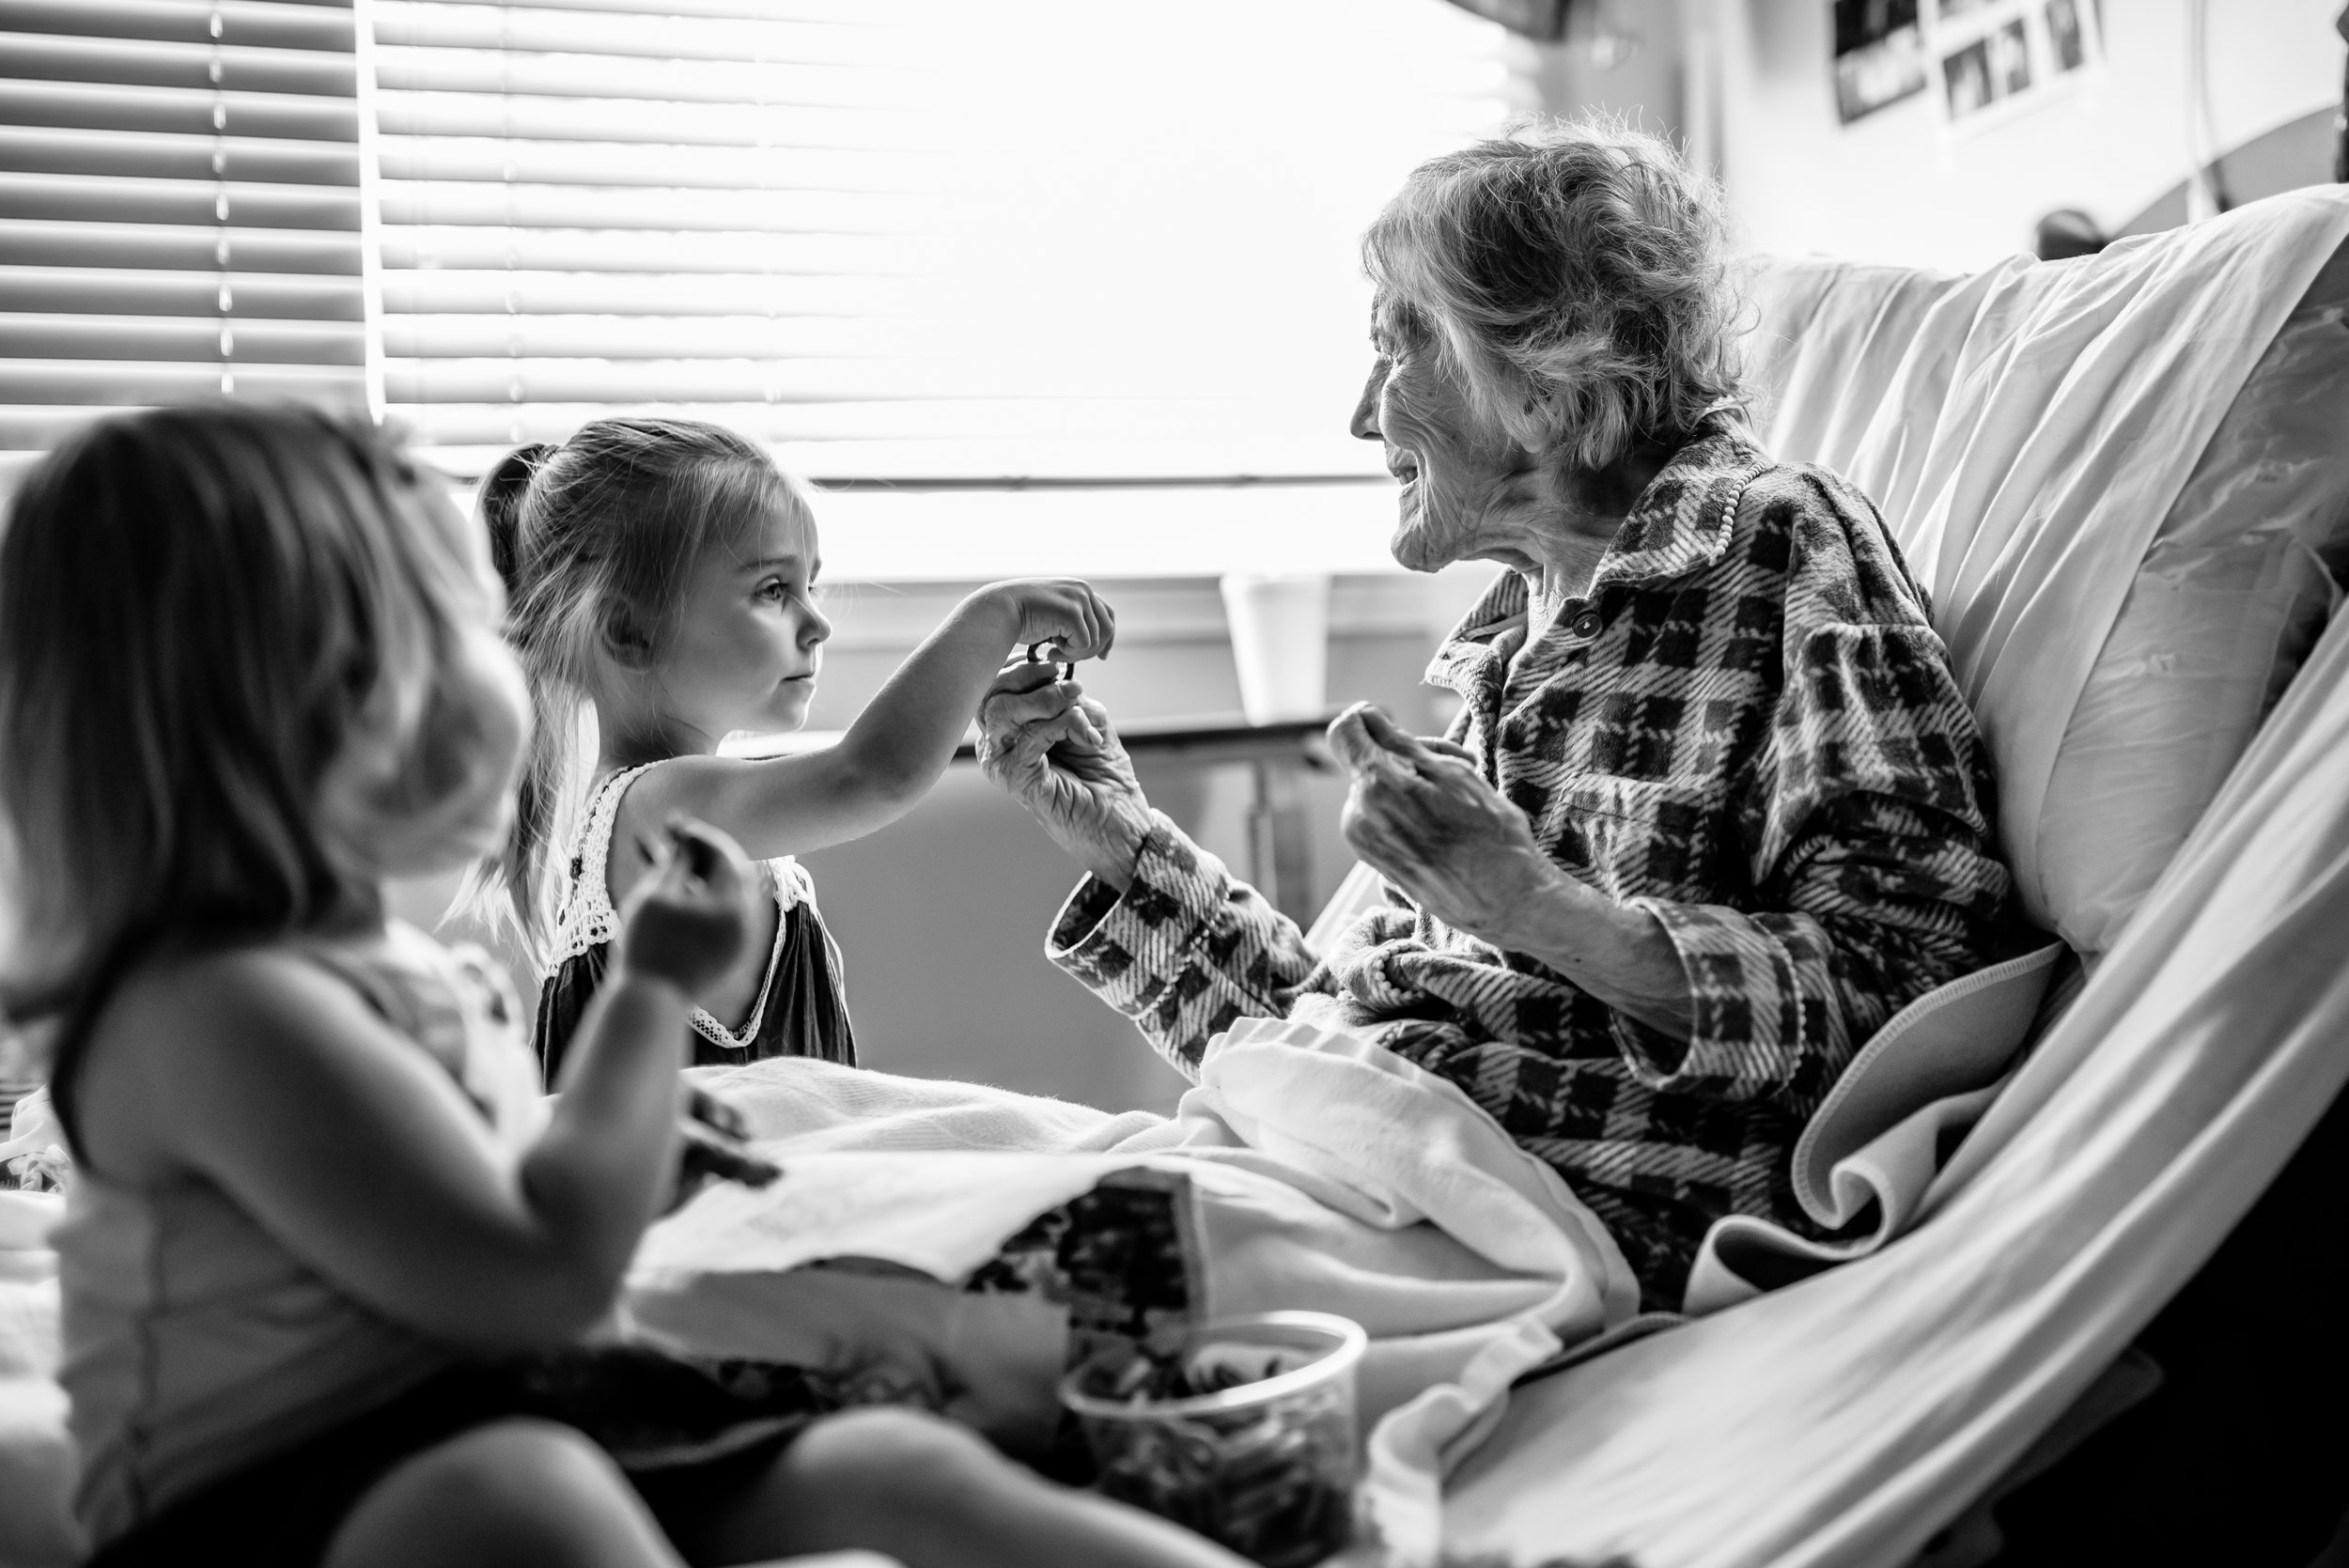 Girls share Glutton pretzels with great-great-grandmother